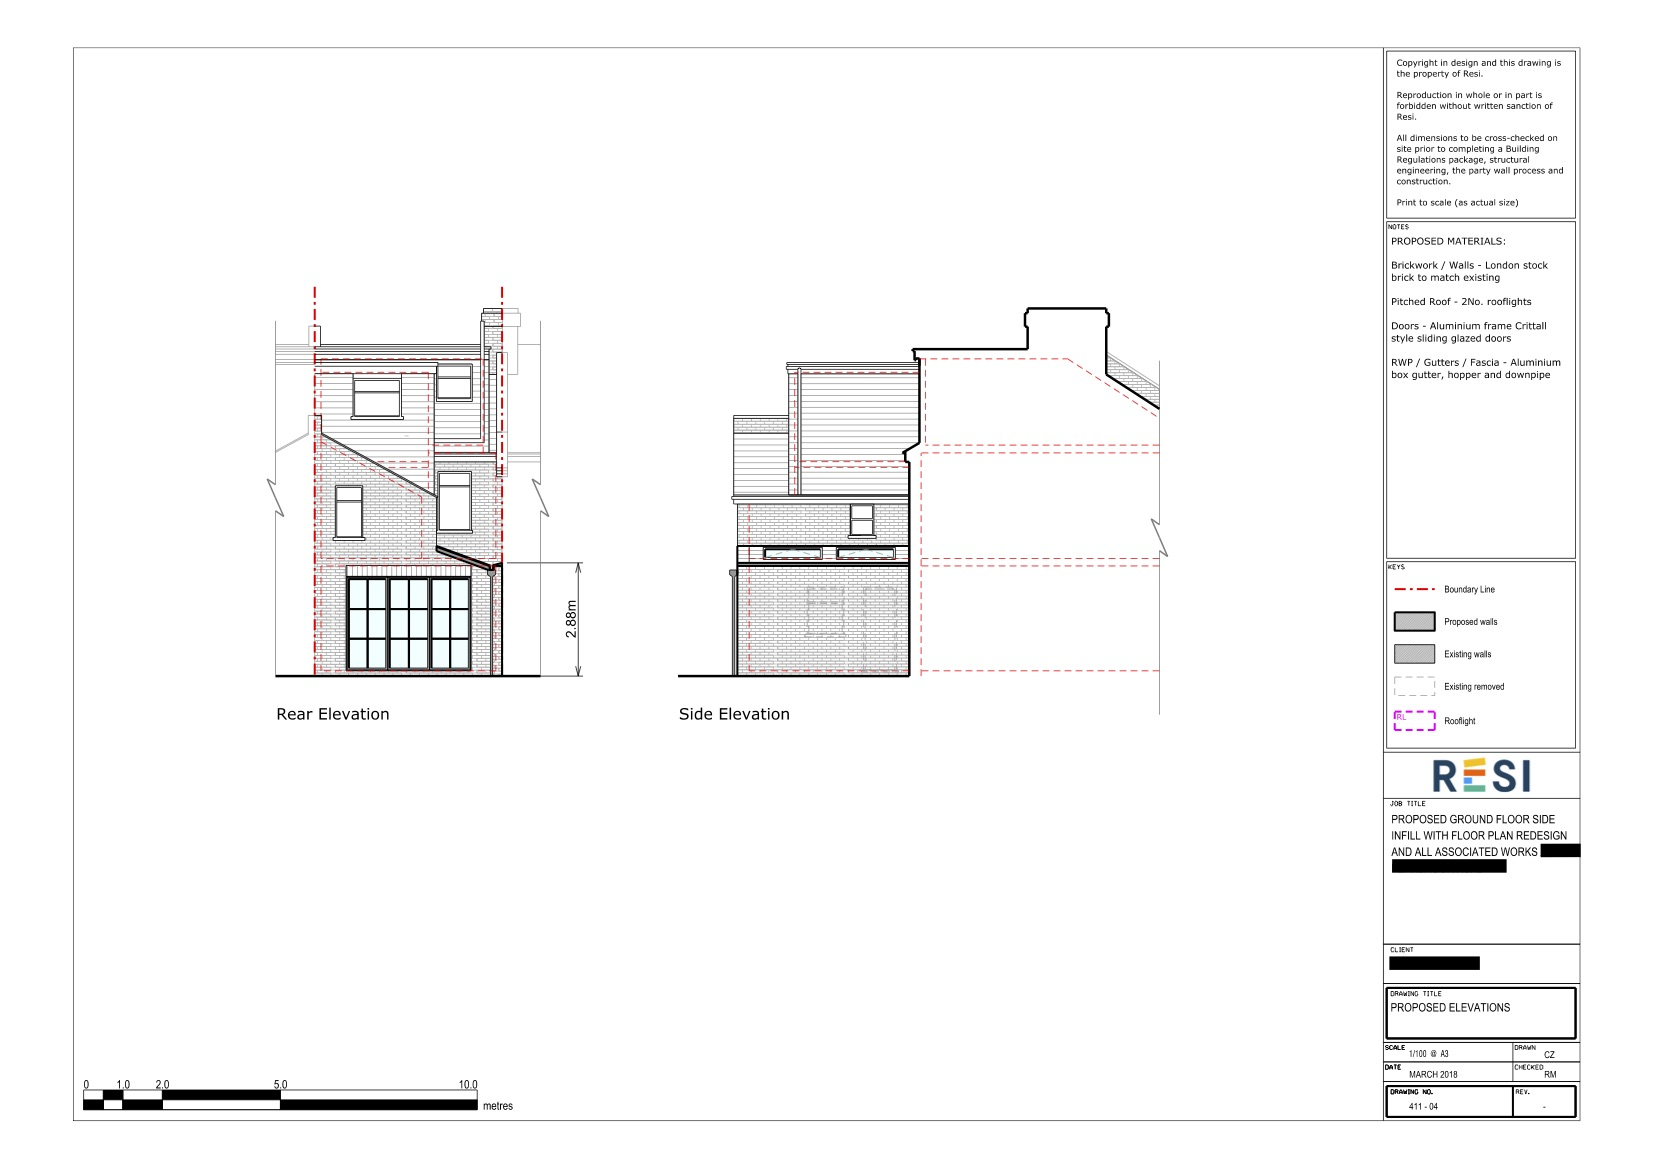 Architectural drawings 22   elevations